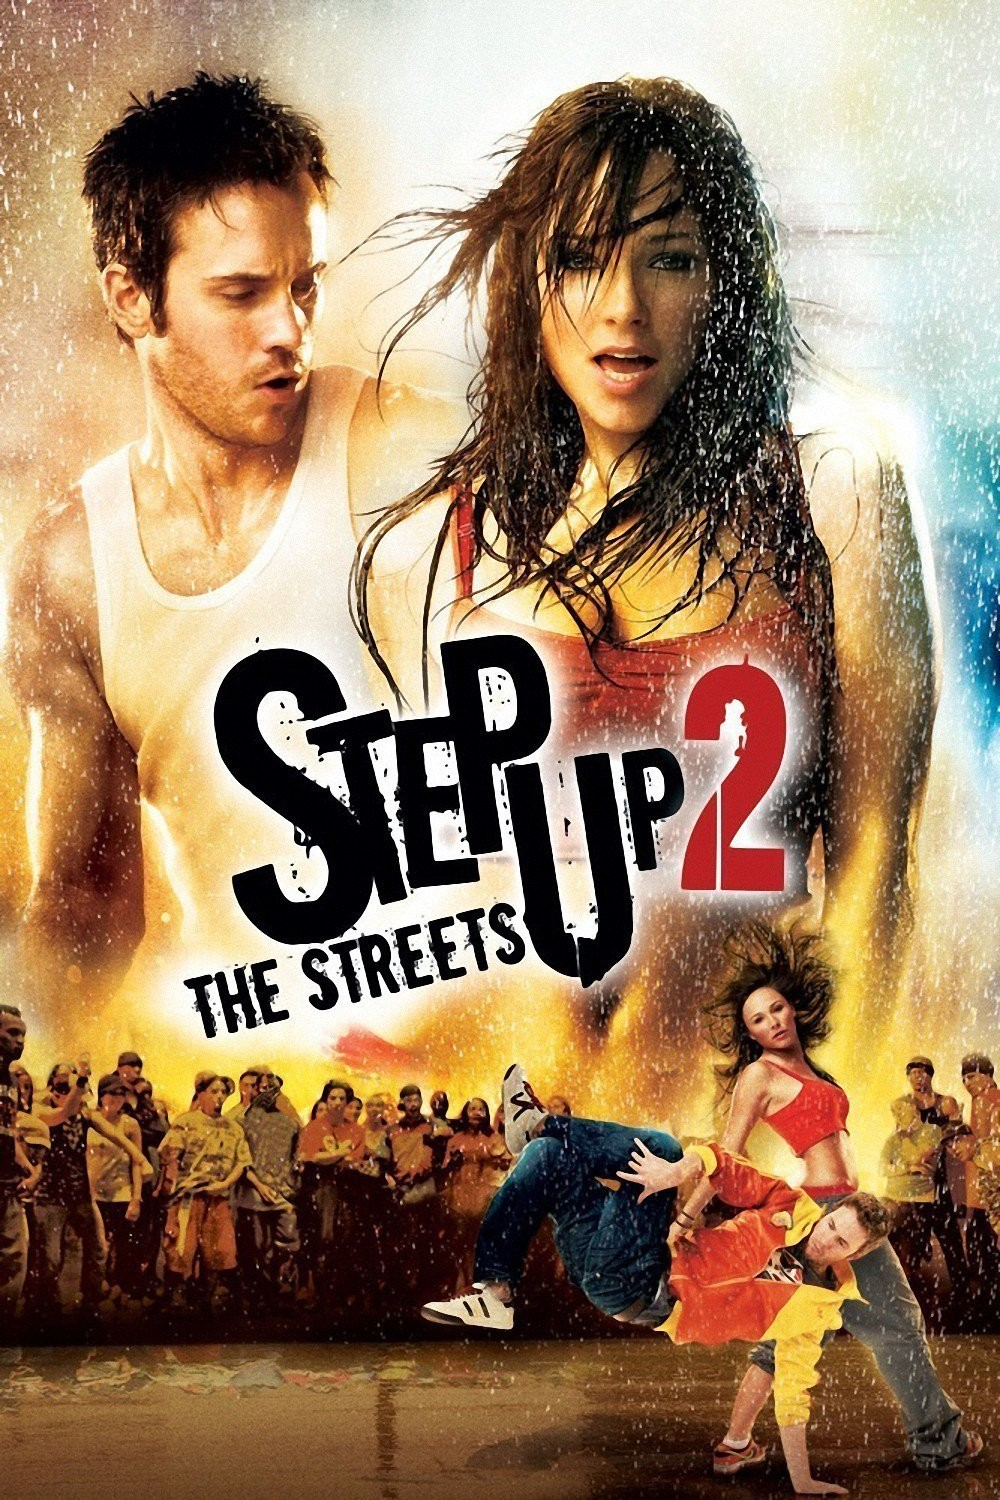 Watch Step Up 2: The Streets (2008) Free Online